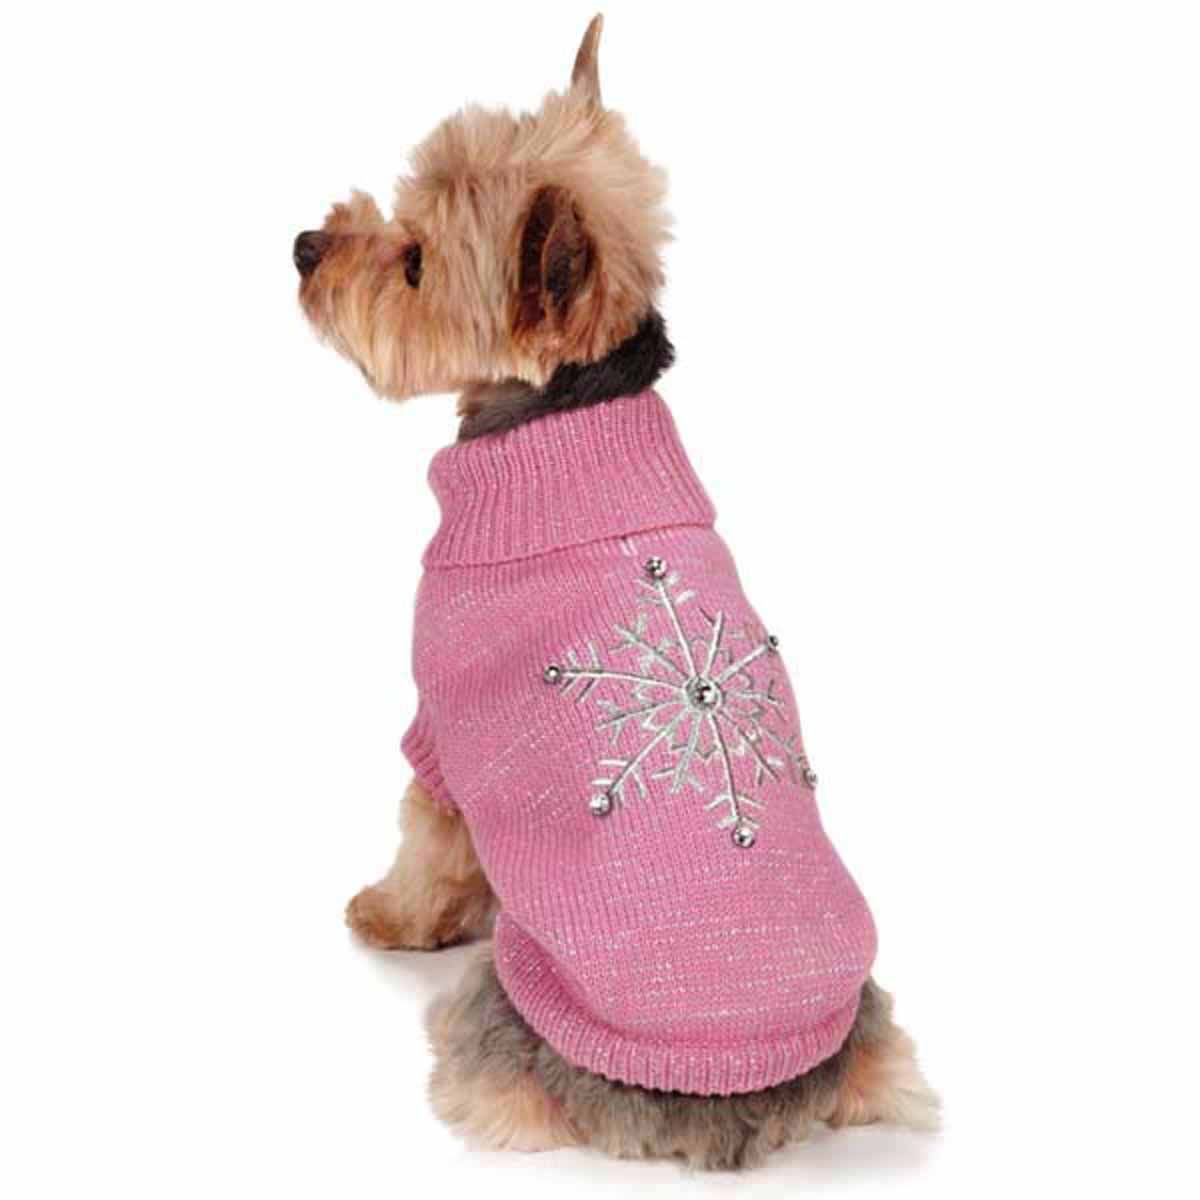 50dfe373e74a Zack and Zoey Shimmer Nights Snowflake Dog Sweater - …